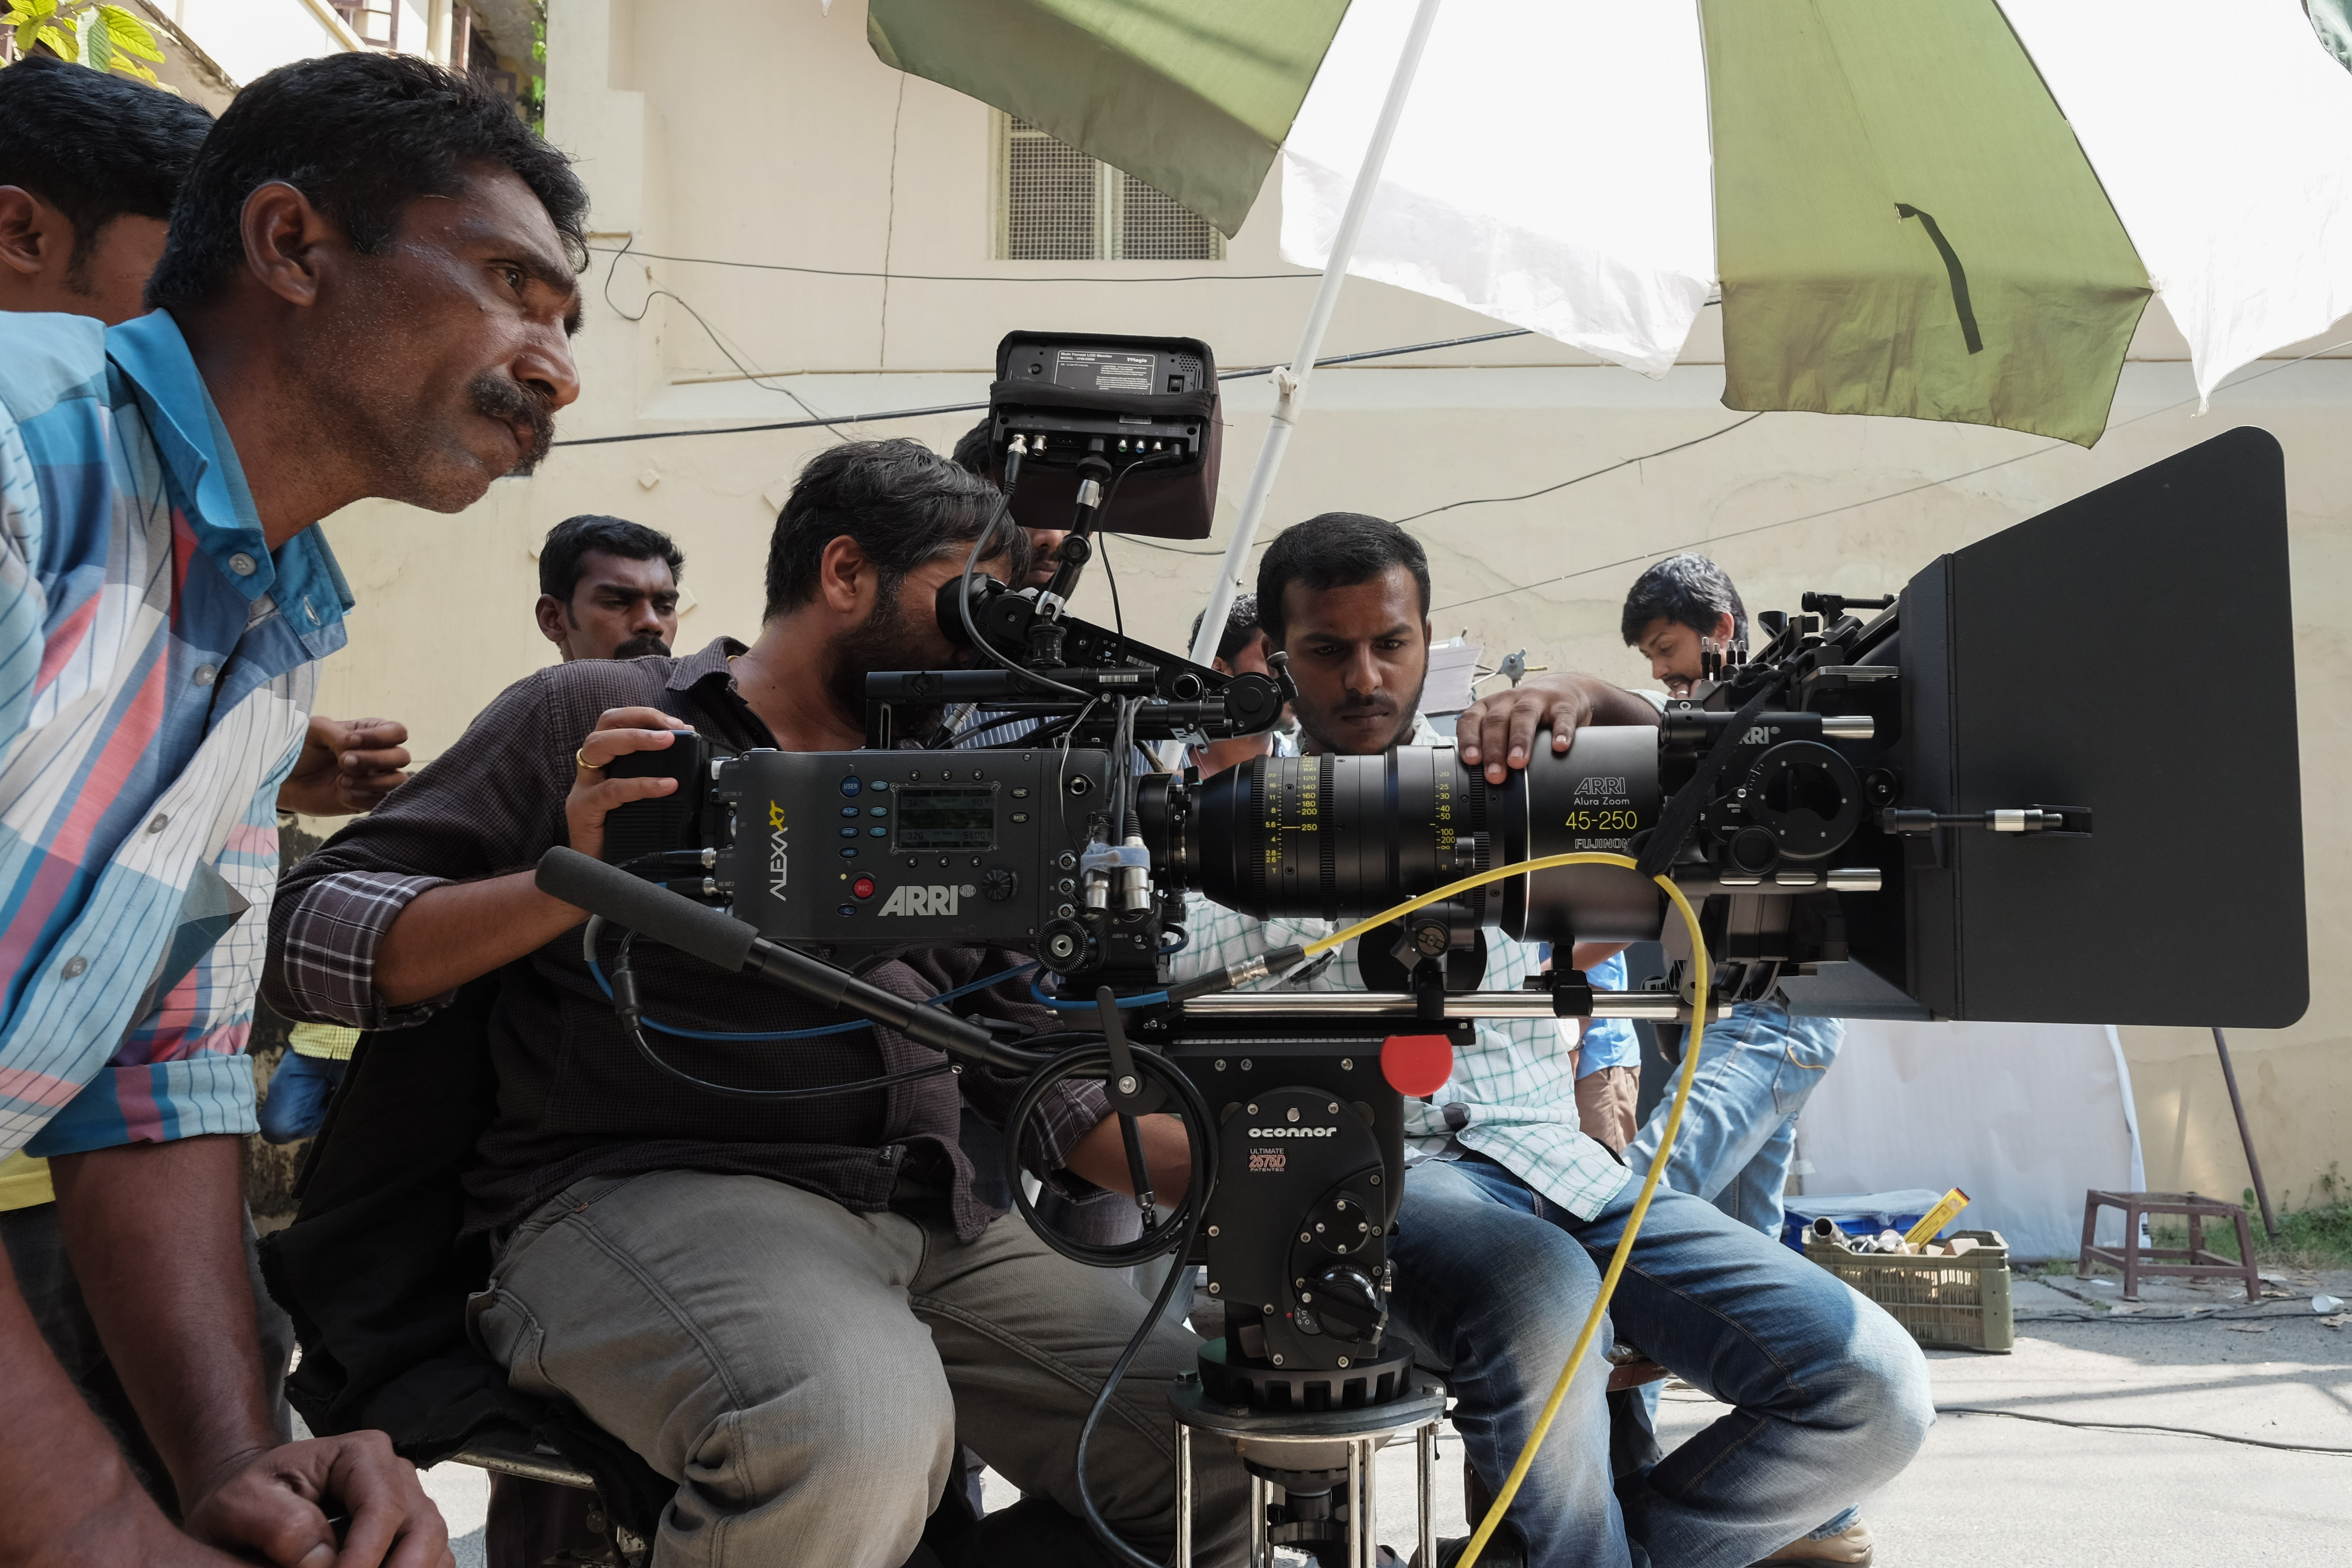 Film Crew looking towards scene with large camera